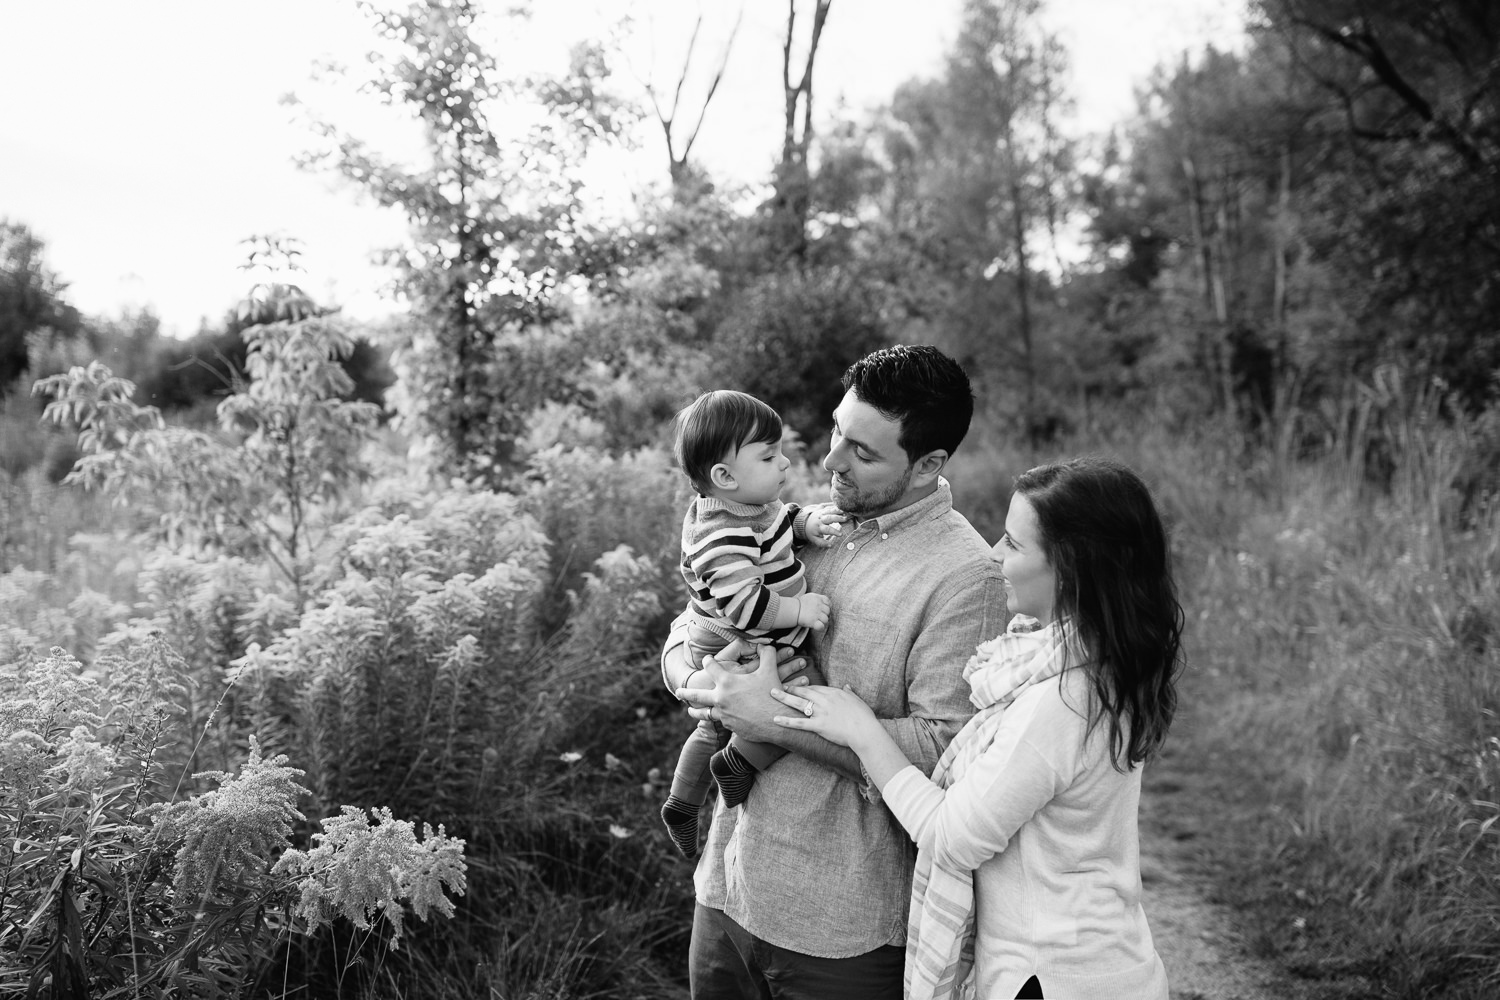 family of 3 standing on path in grassy field, dad holding 1 year old baby boy, mom standing behind husband, hand on his arm, looking at son - GTA Golden Hour Photos